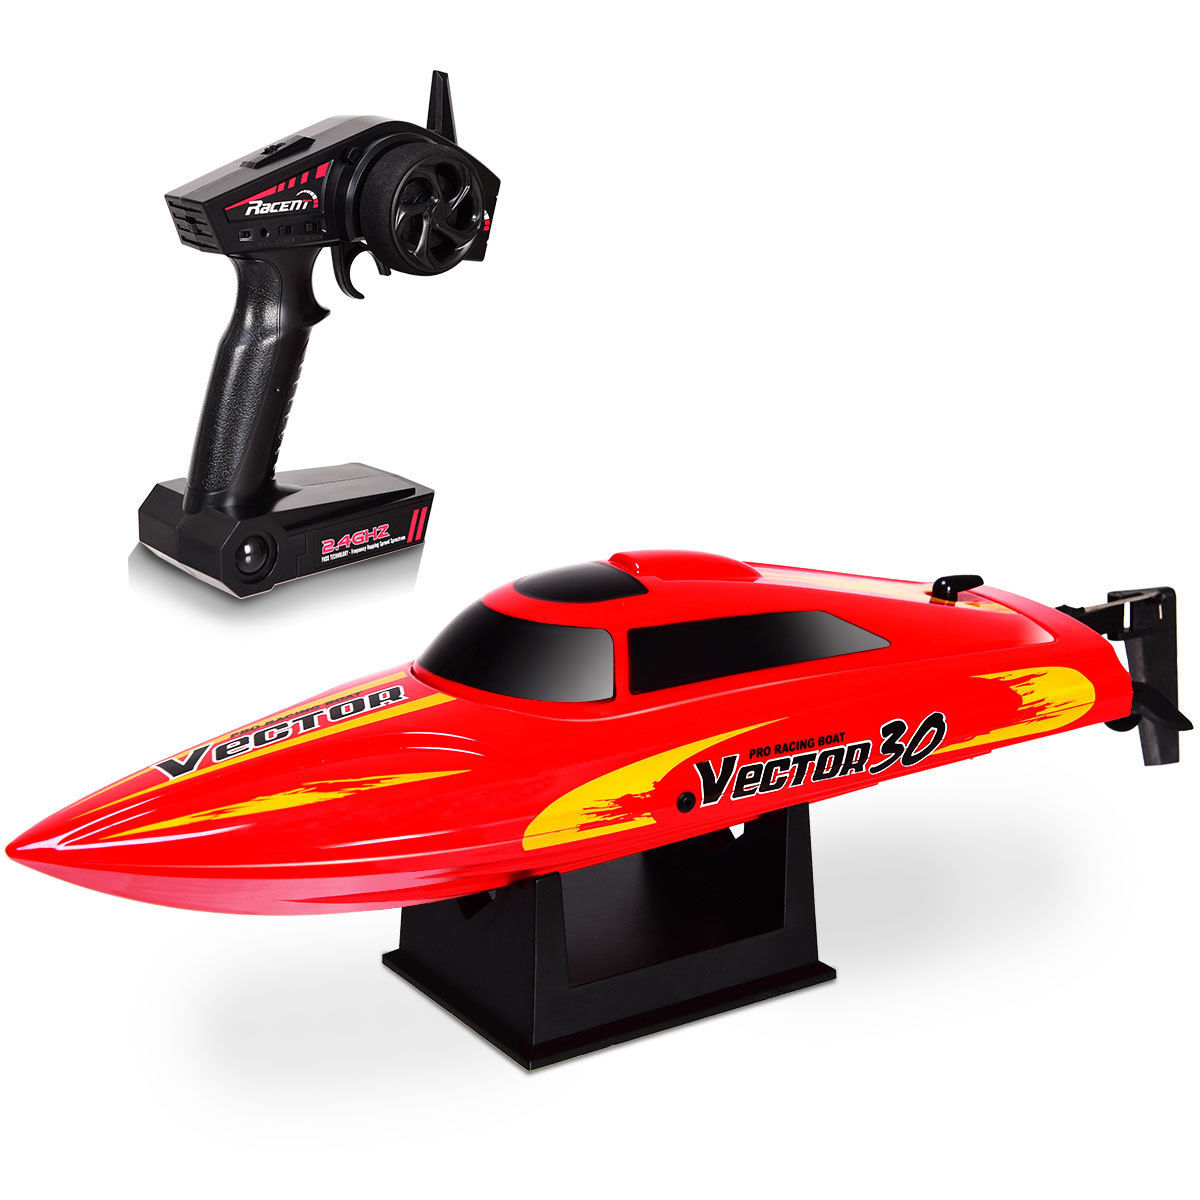 Costway 2.4G RC Racing Boat High Speed 30KM/H Brushed RTR Fast Racing Lake Toy Gift Red